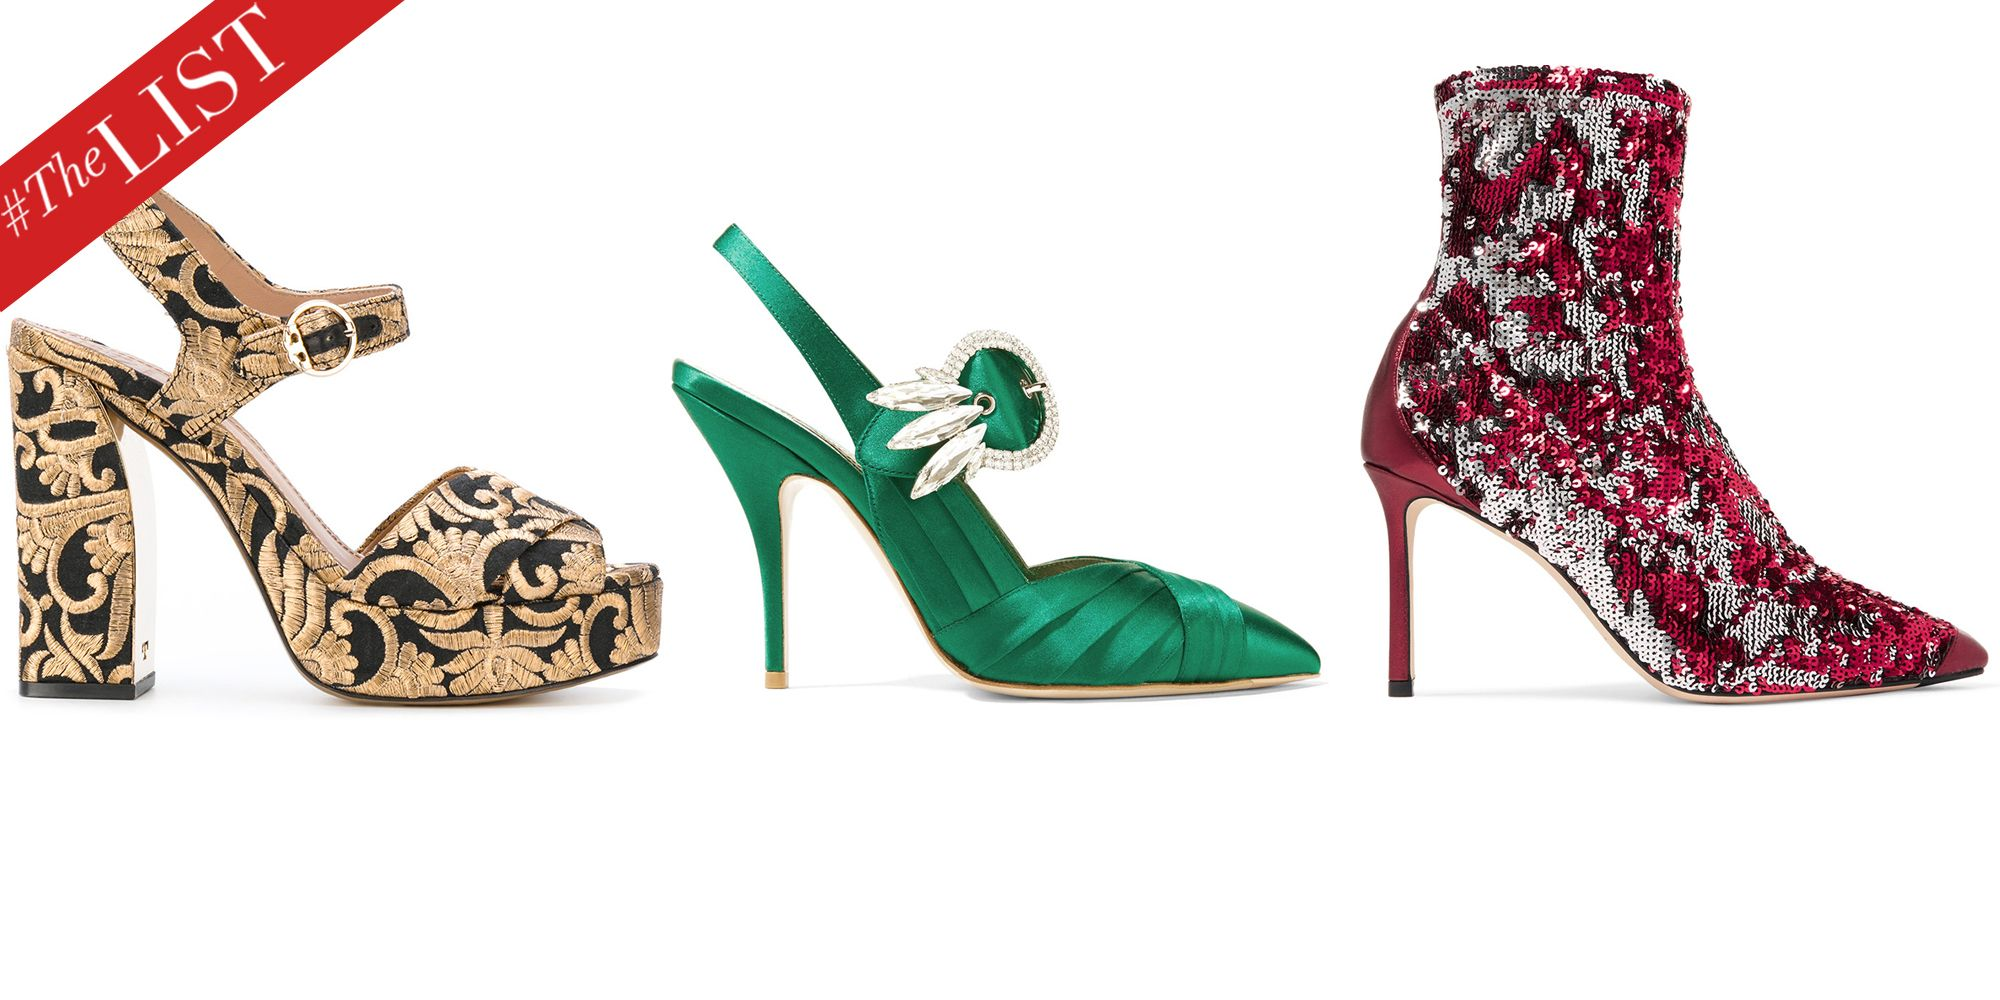 20 Must-Have Shoes For the Holiday Season